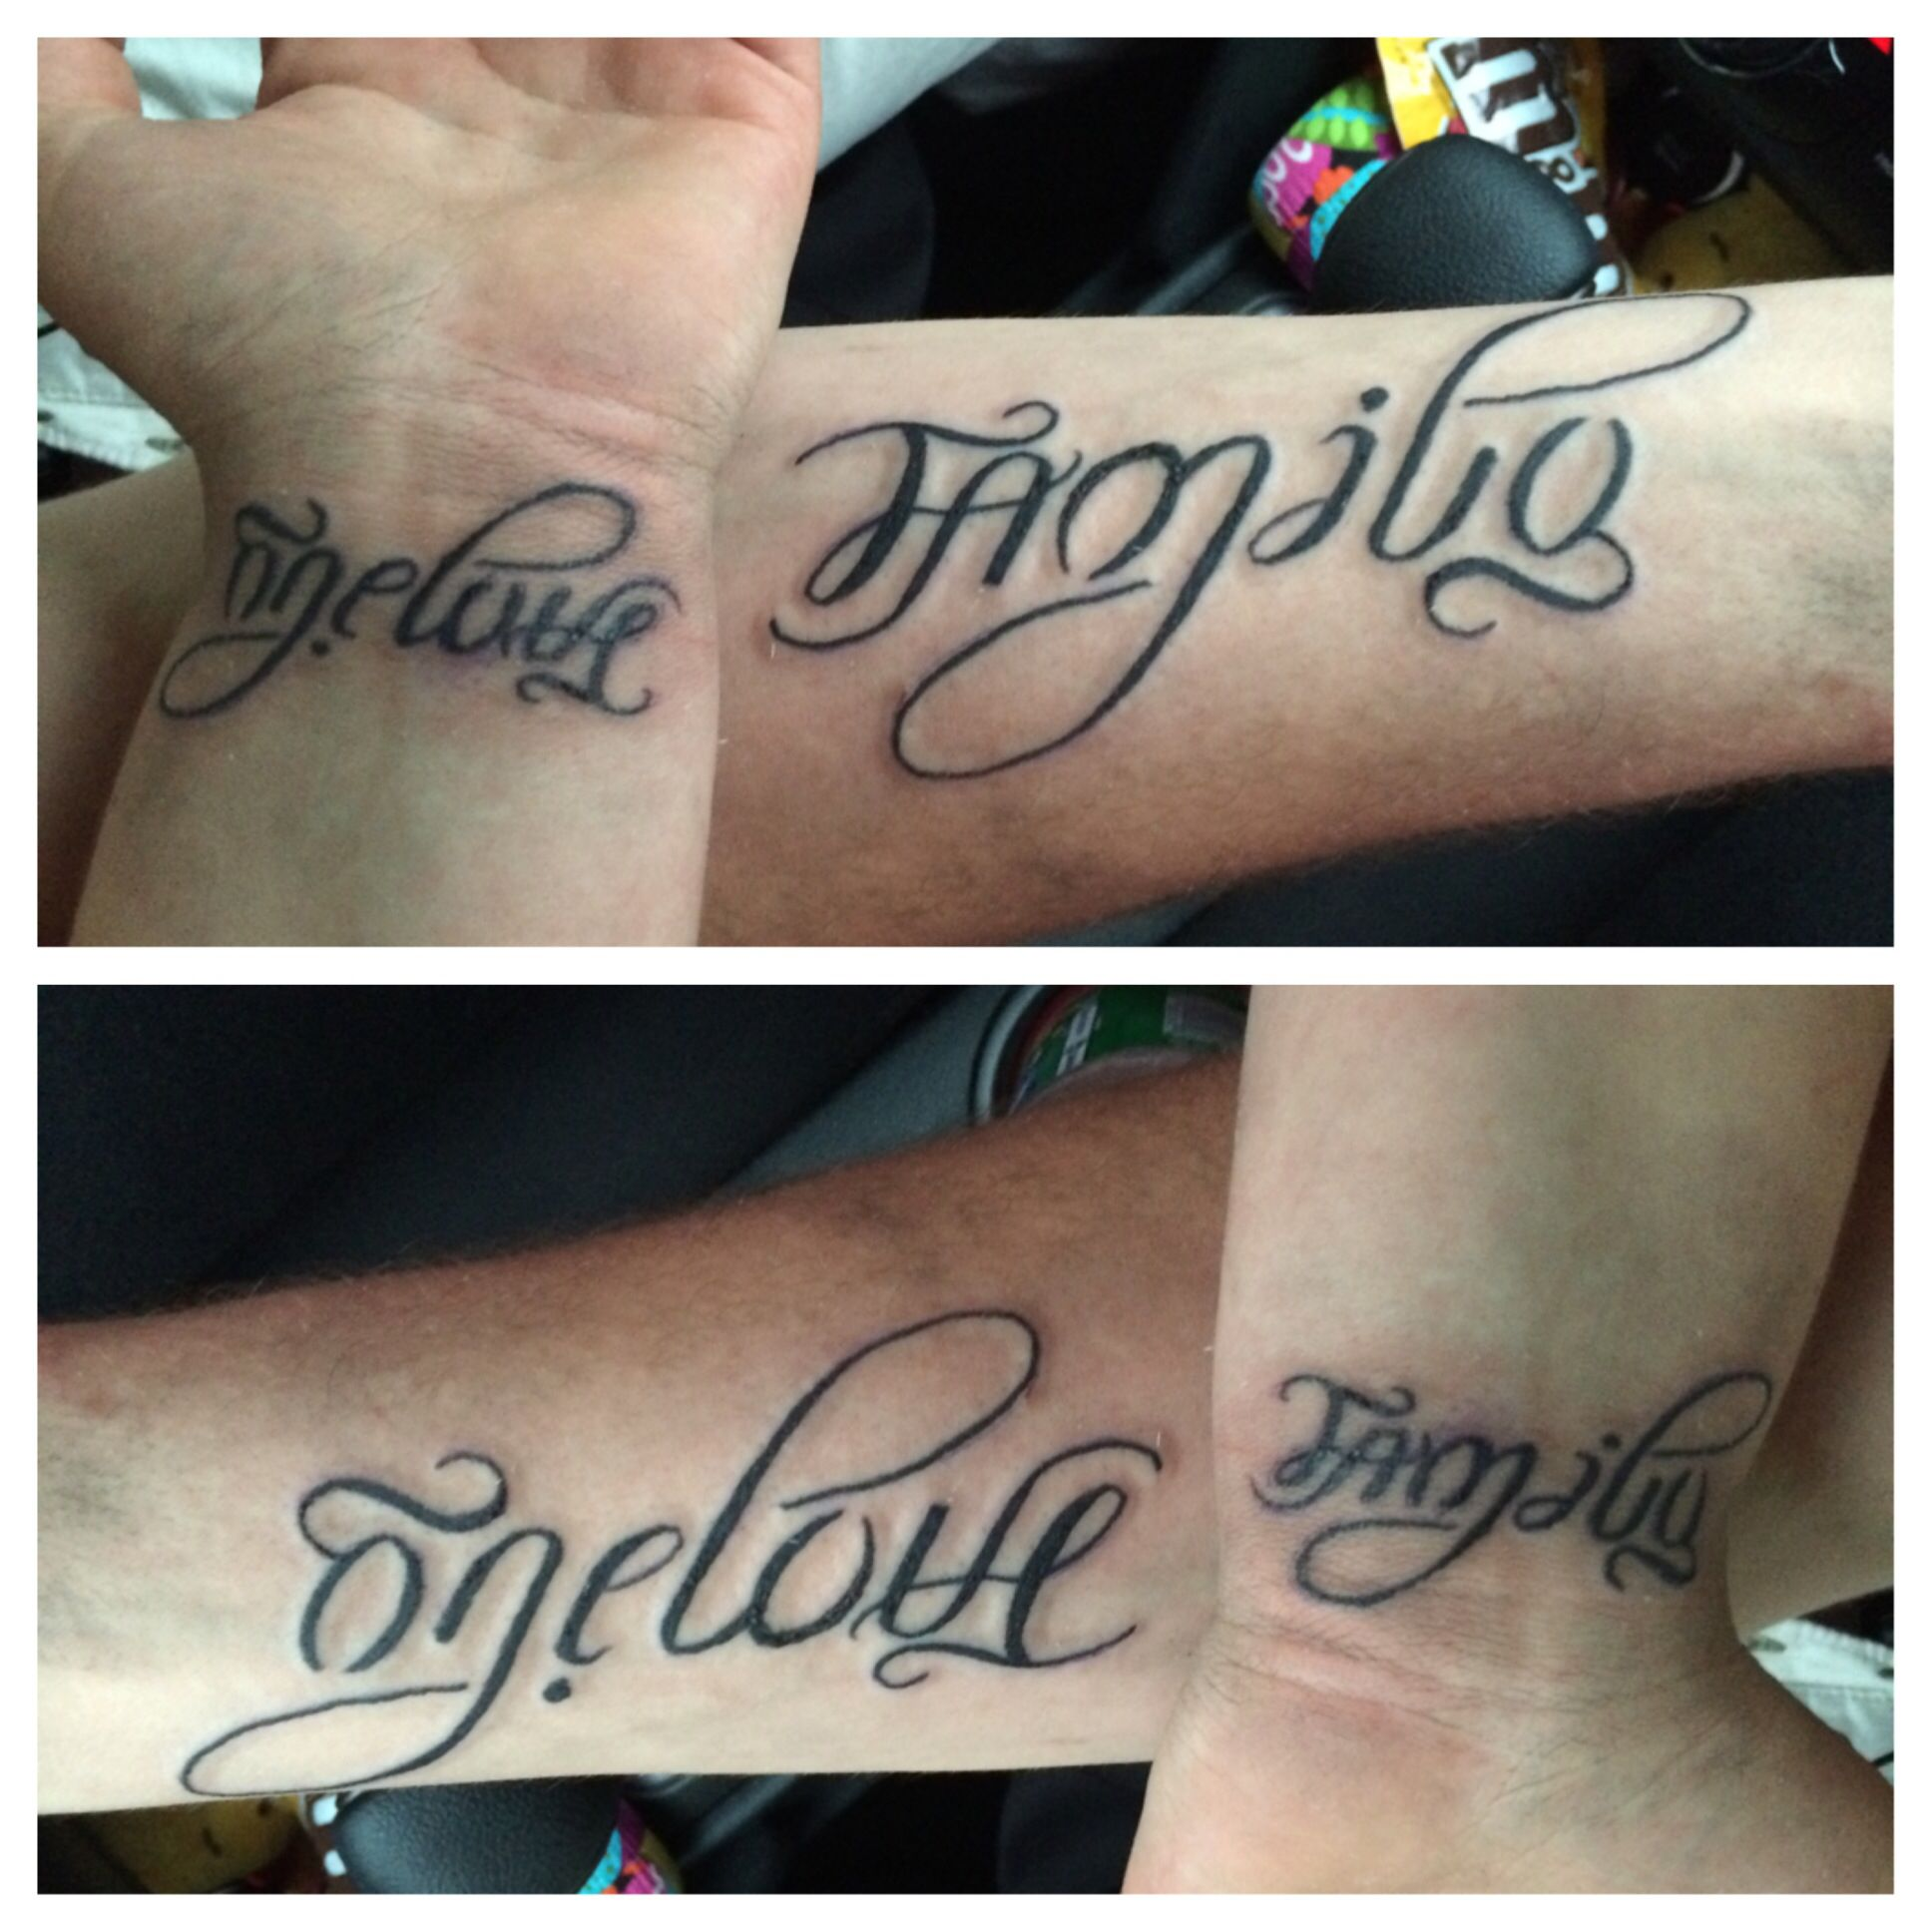 my boyfriend and my matching tattoos! family/one love ambigram. WE LOVE IT!